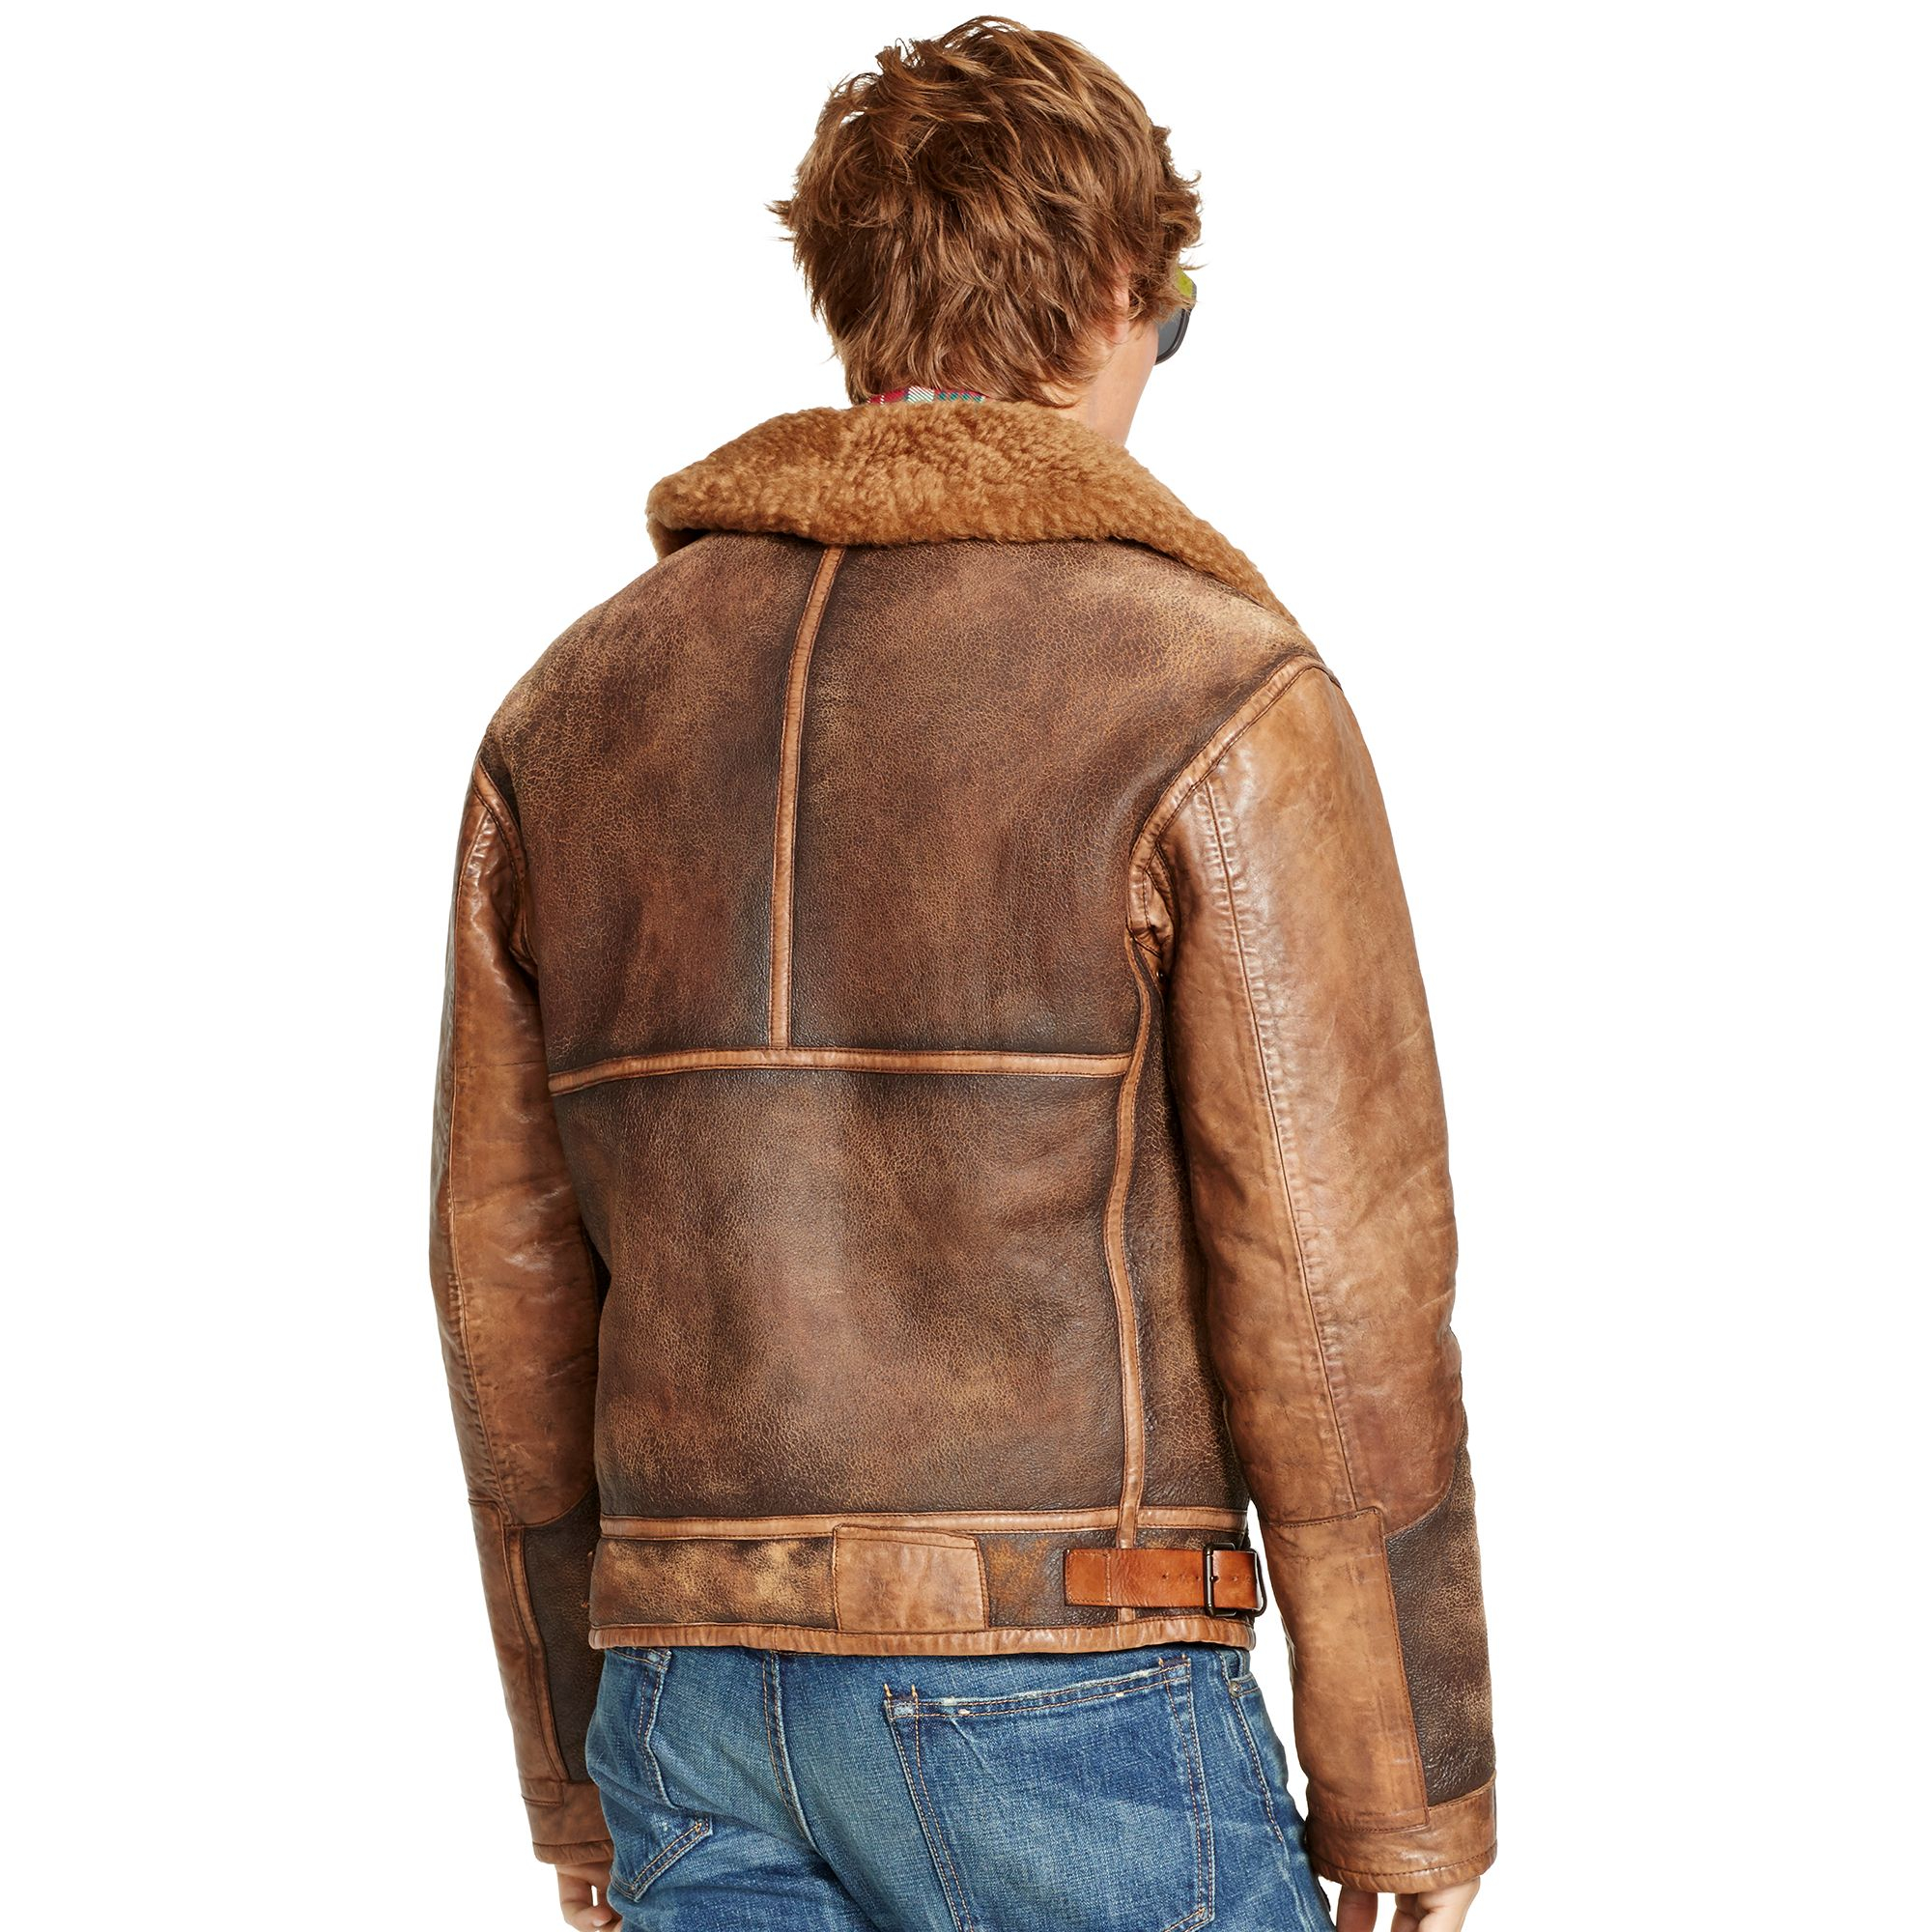 Polo Ralph Lauren Shearling Bomber Jacket in Brown for Men - Lyst f5c46a4a52b15